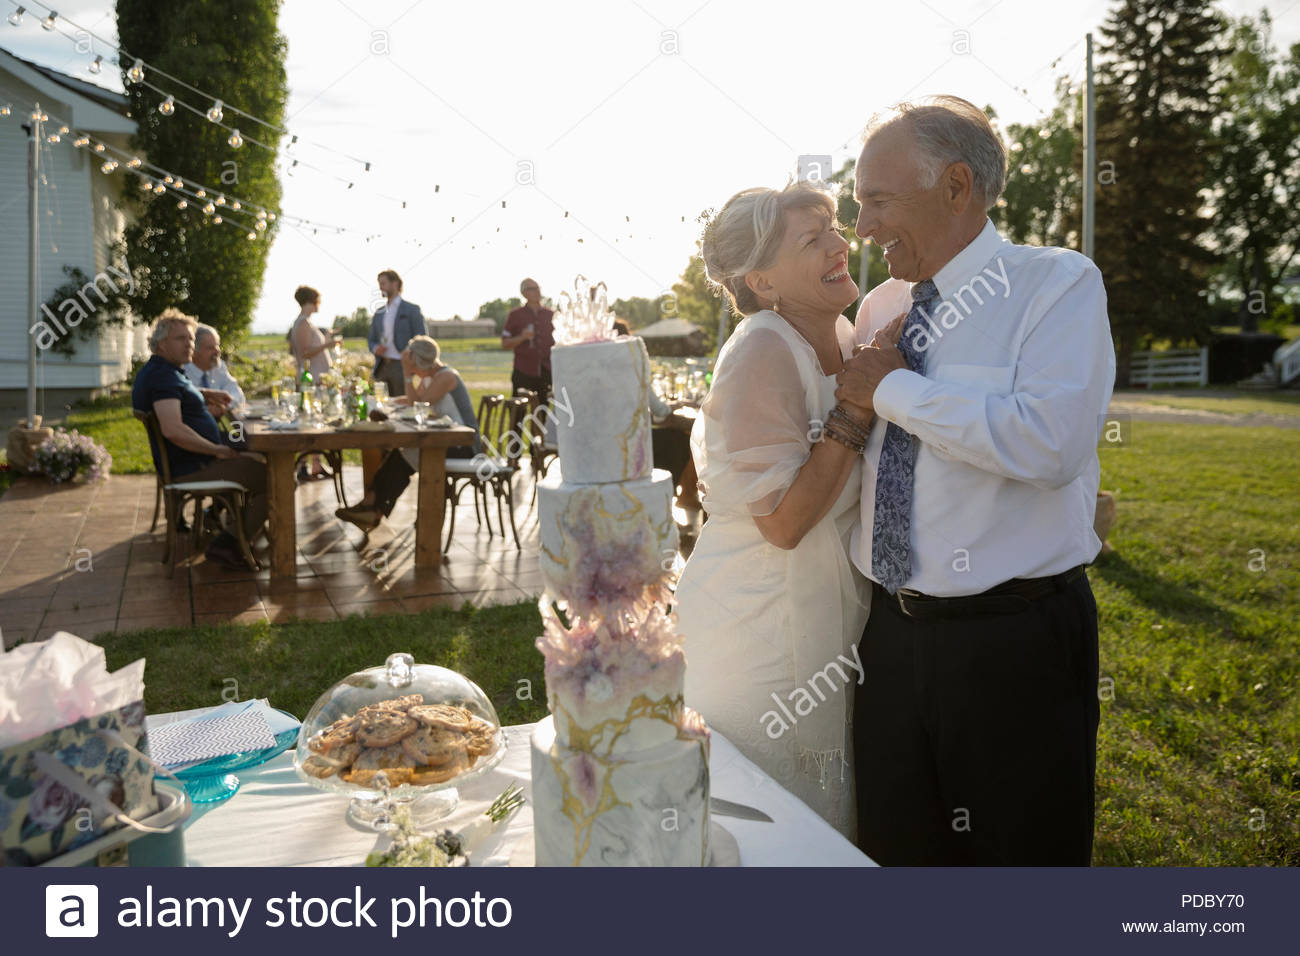 Affectionate senior bride and groom standing at wedding cake - Stock Image